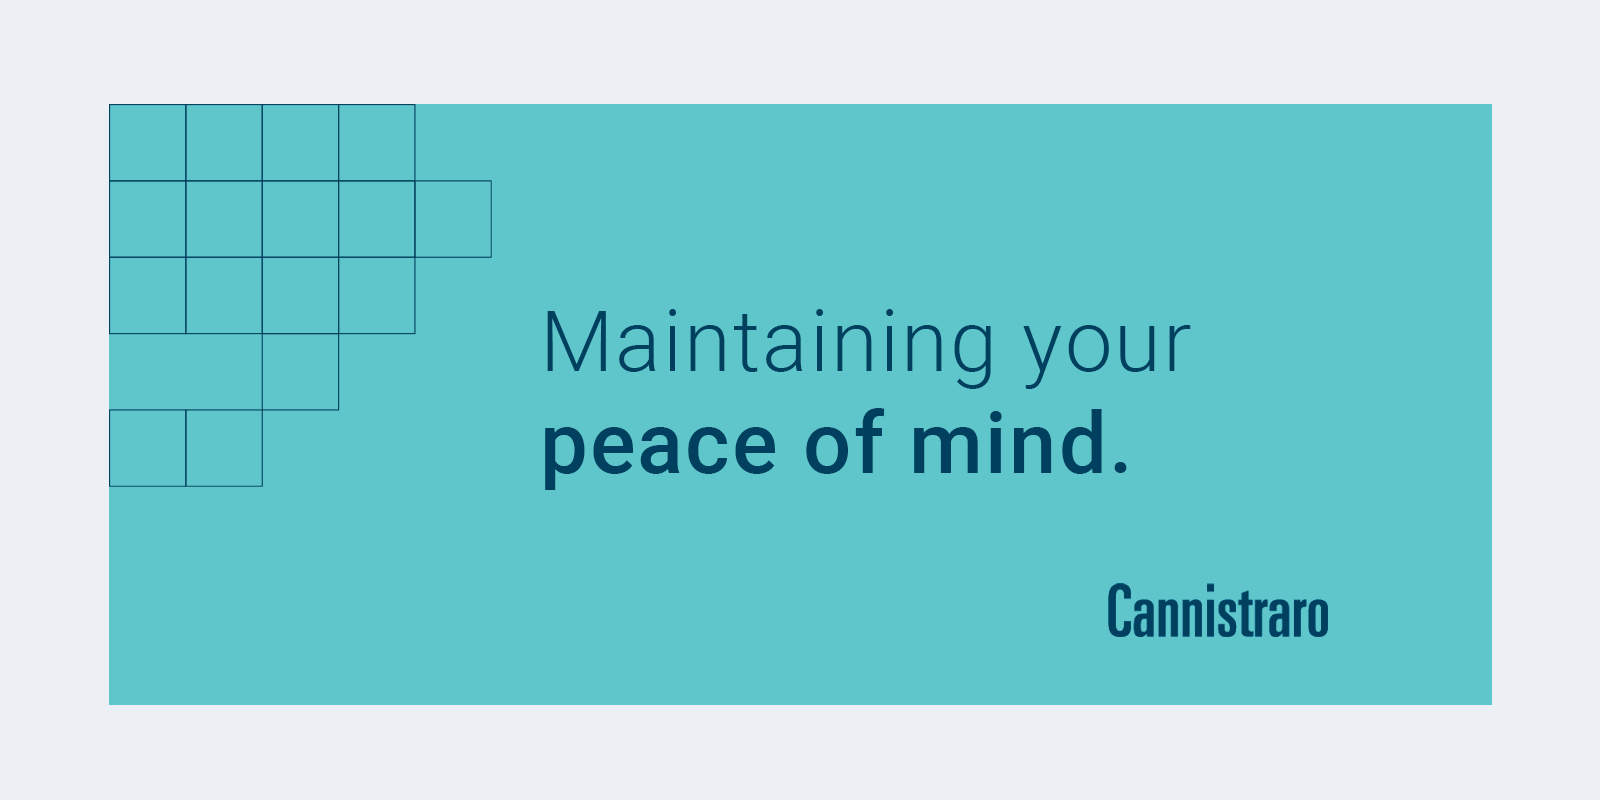 Maintaining your peace of mind. - Cannistraro